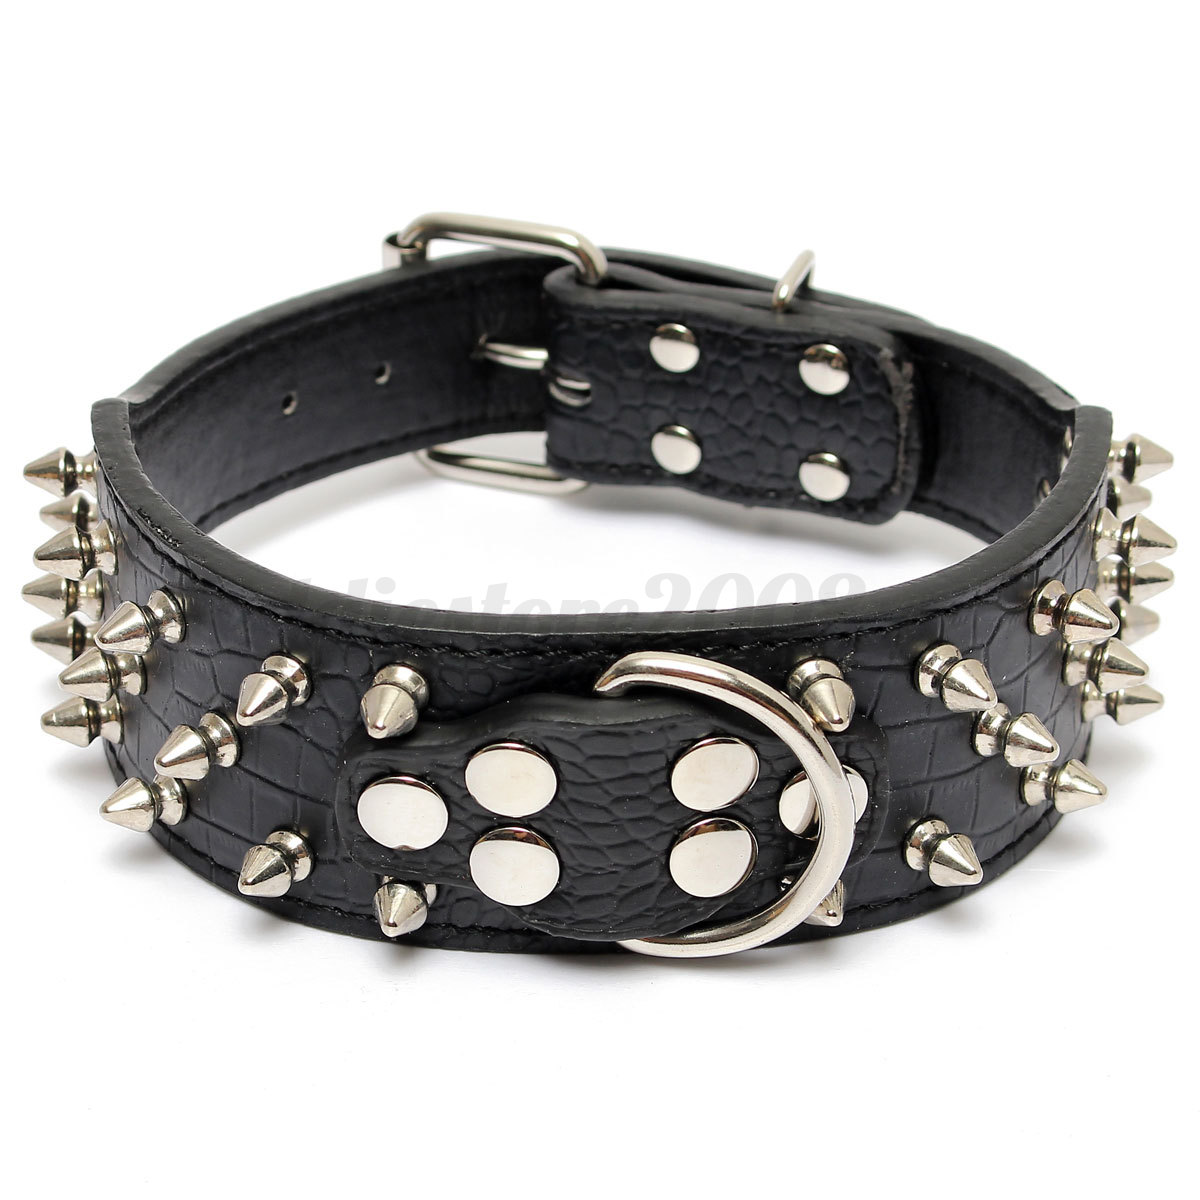 Spiked Dog Collar Necklace